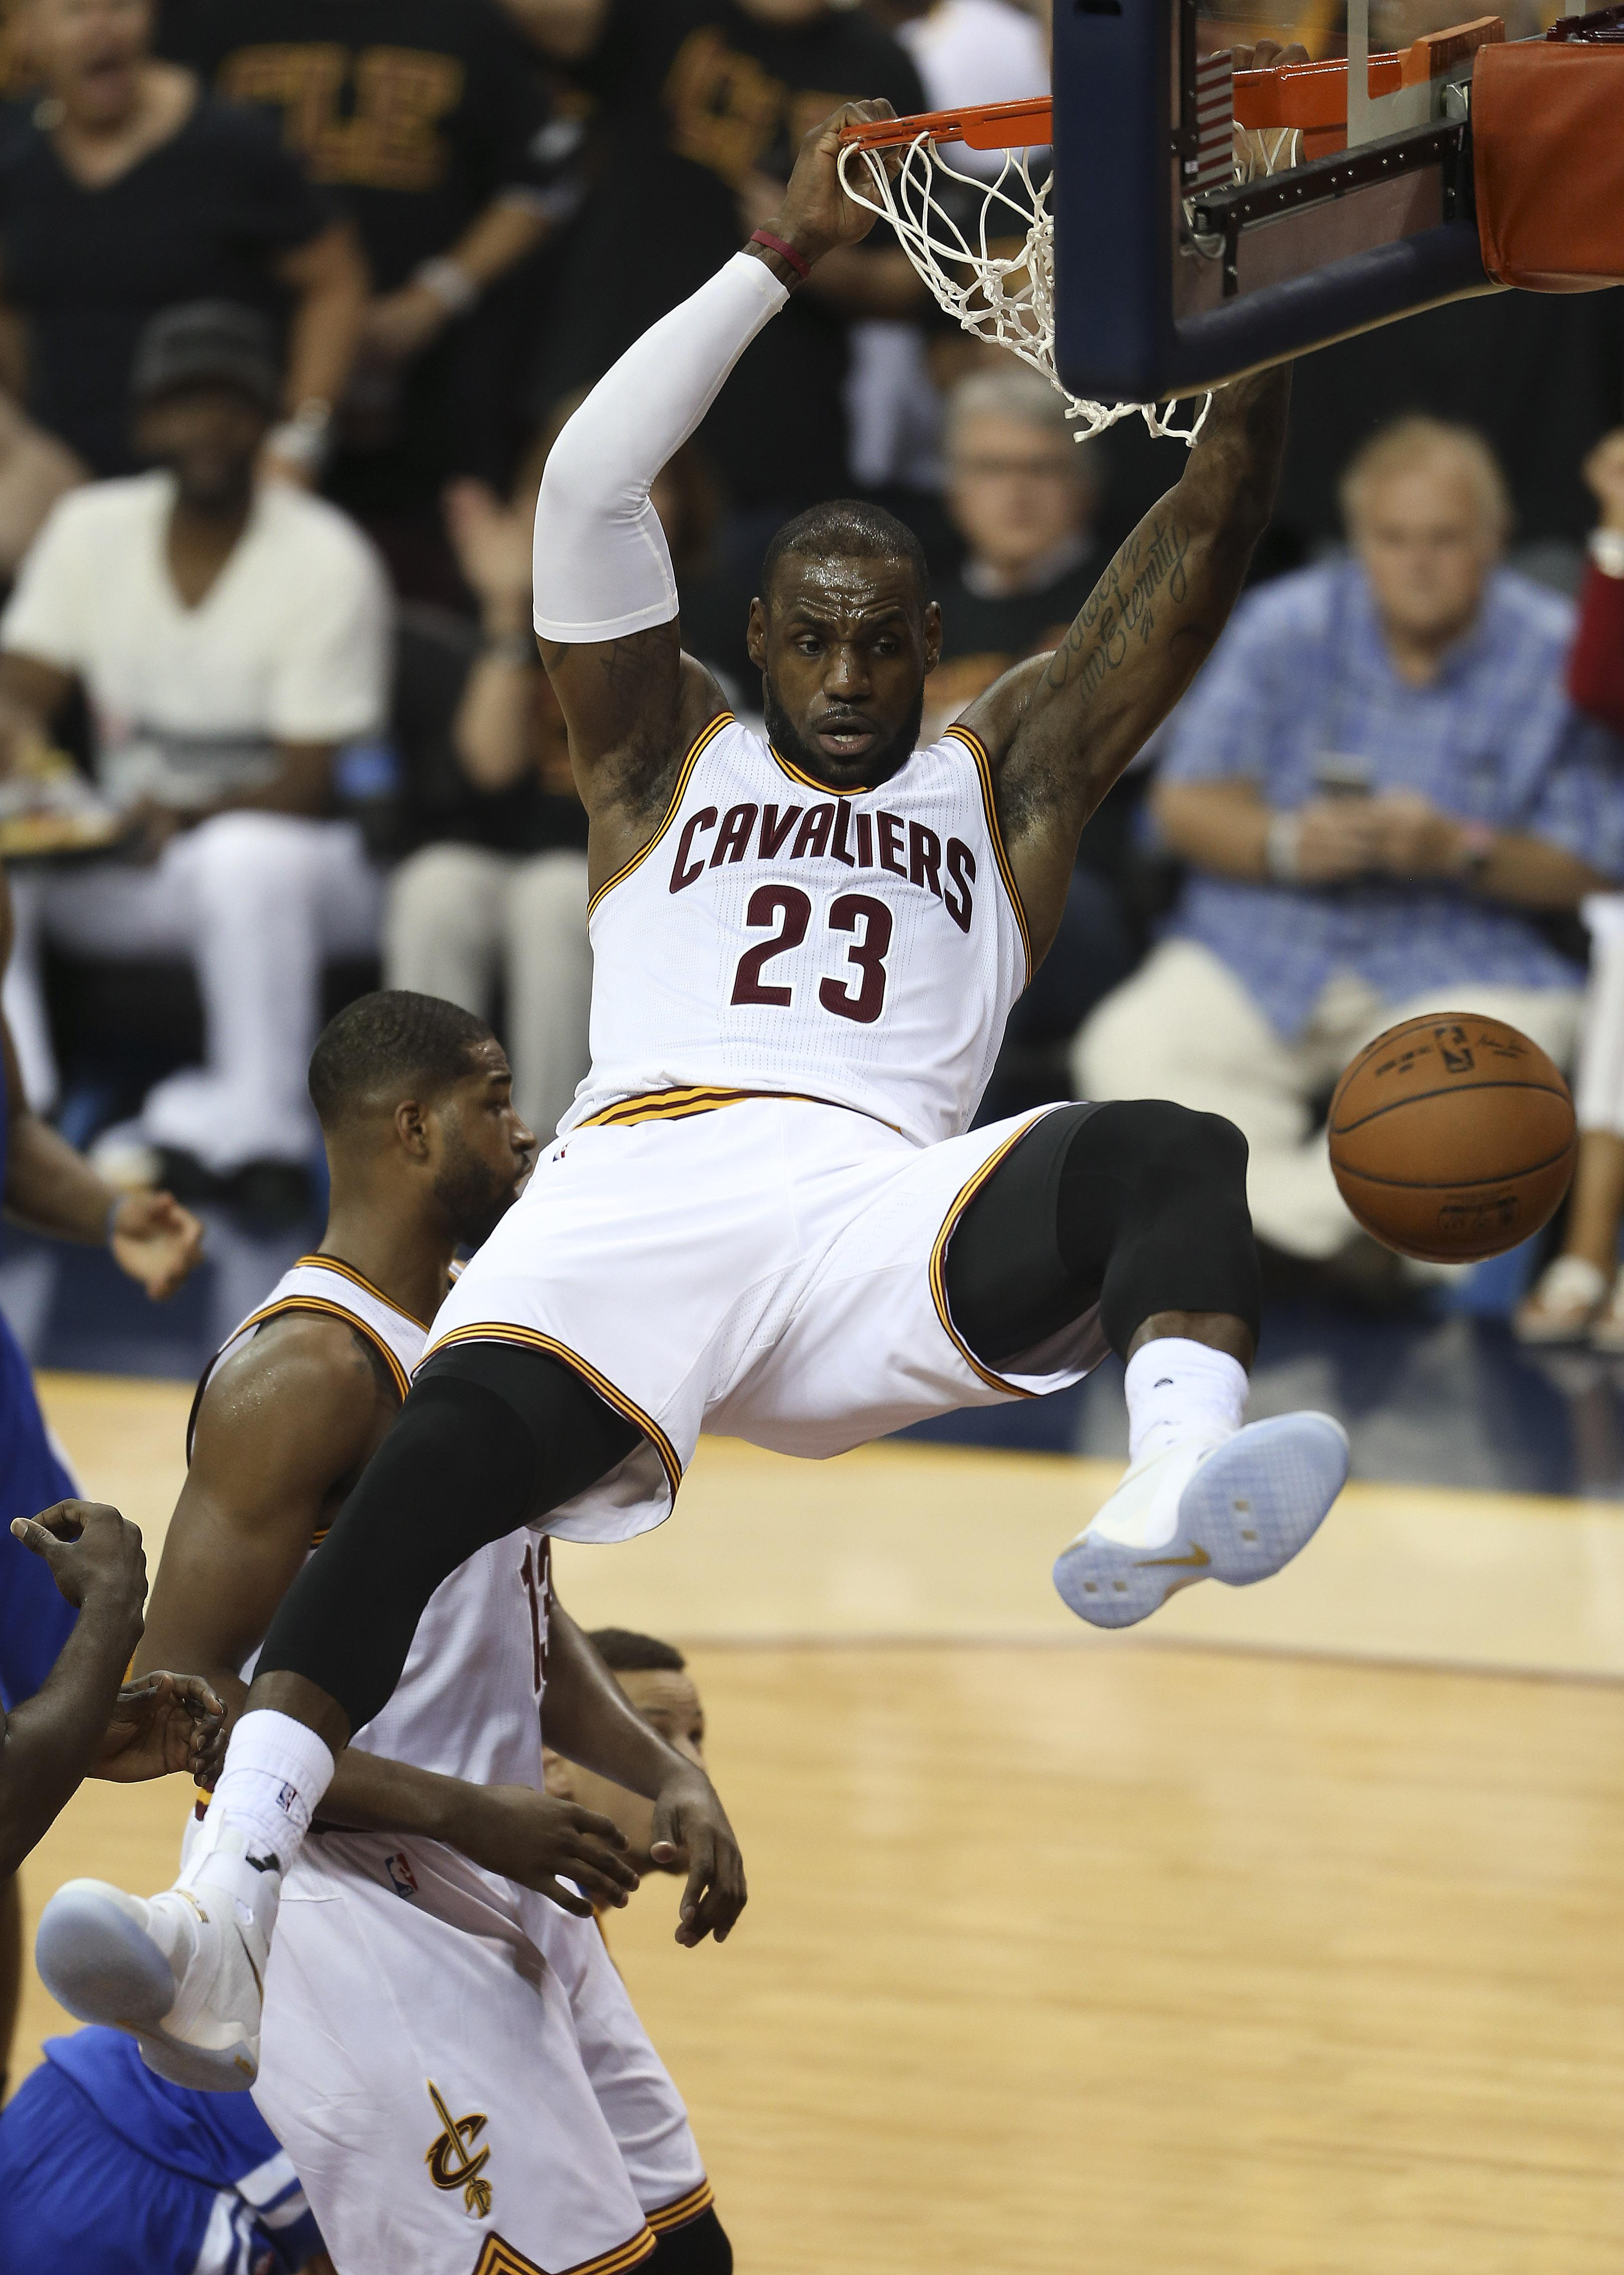 lebron james cavs 6 - photo #6